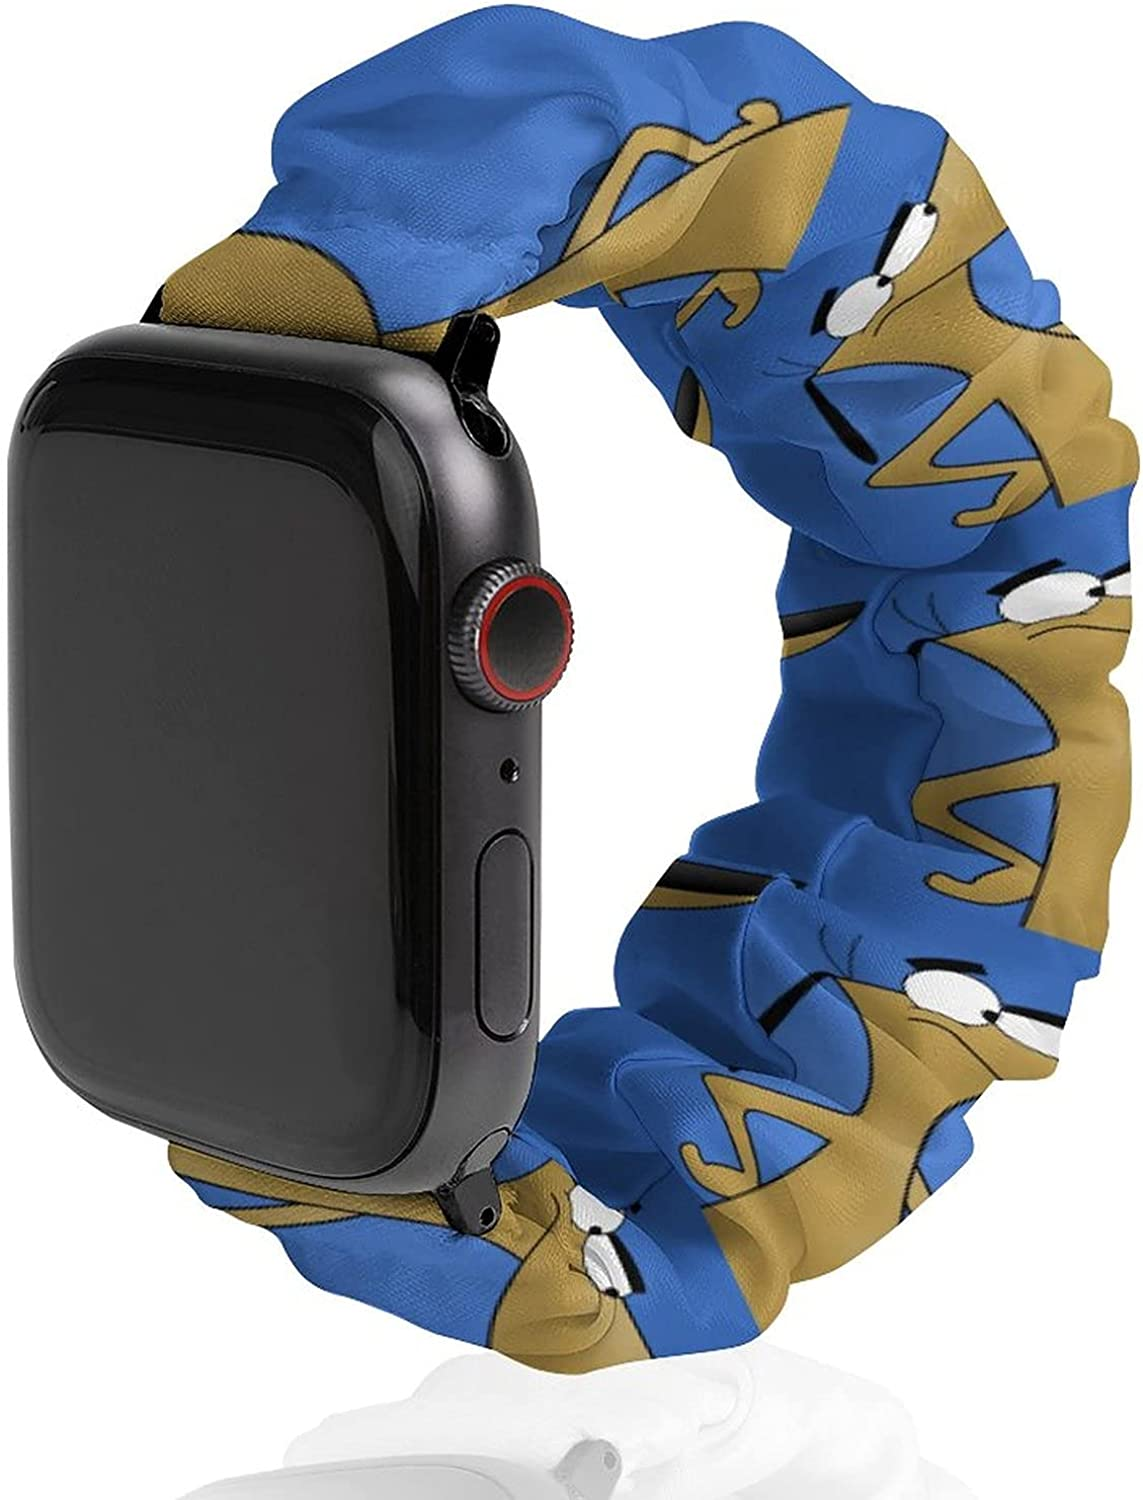 2 Stupid Dogs All items in the store Watchband for Apple Boys Watch Cute Popular shop is the lowest price challenge No Wris Buckle